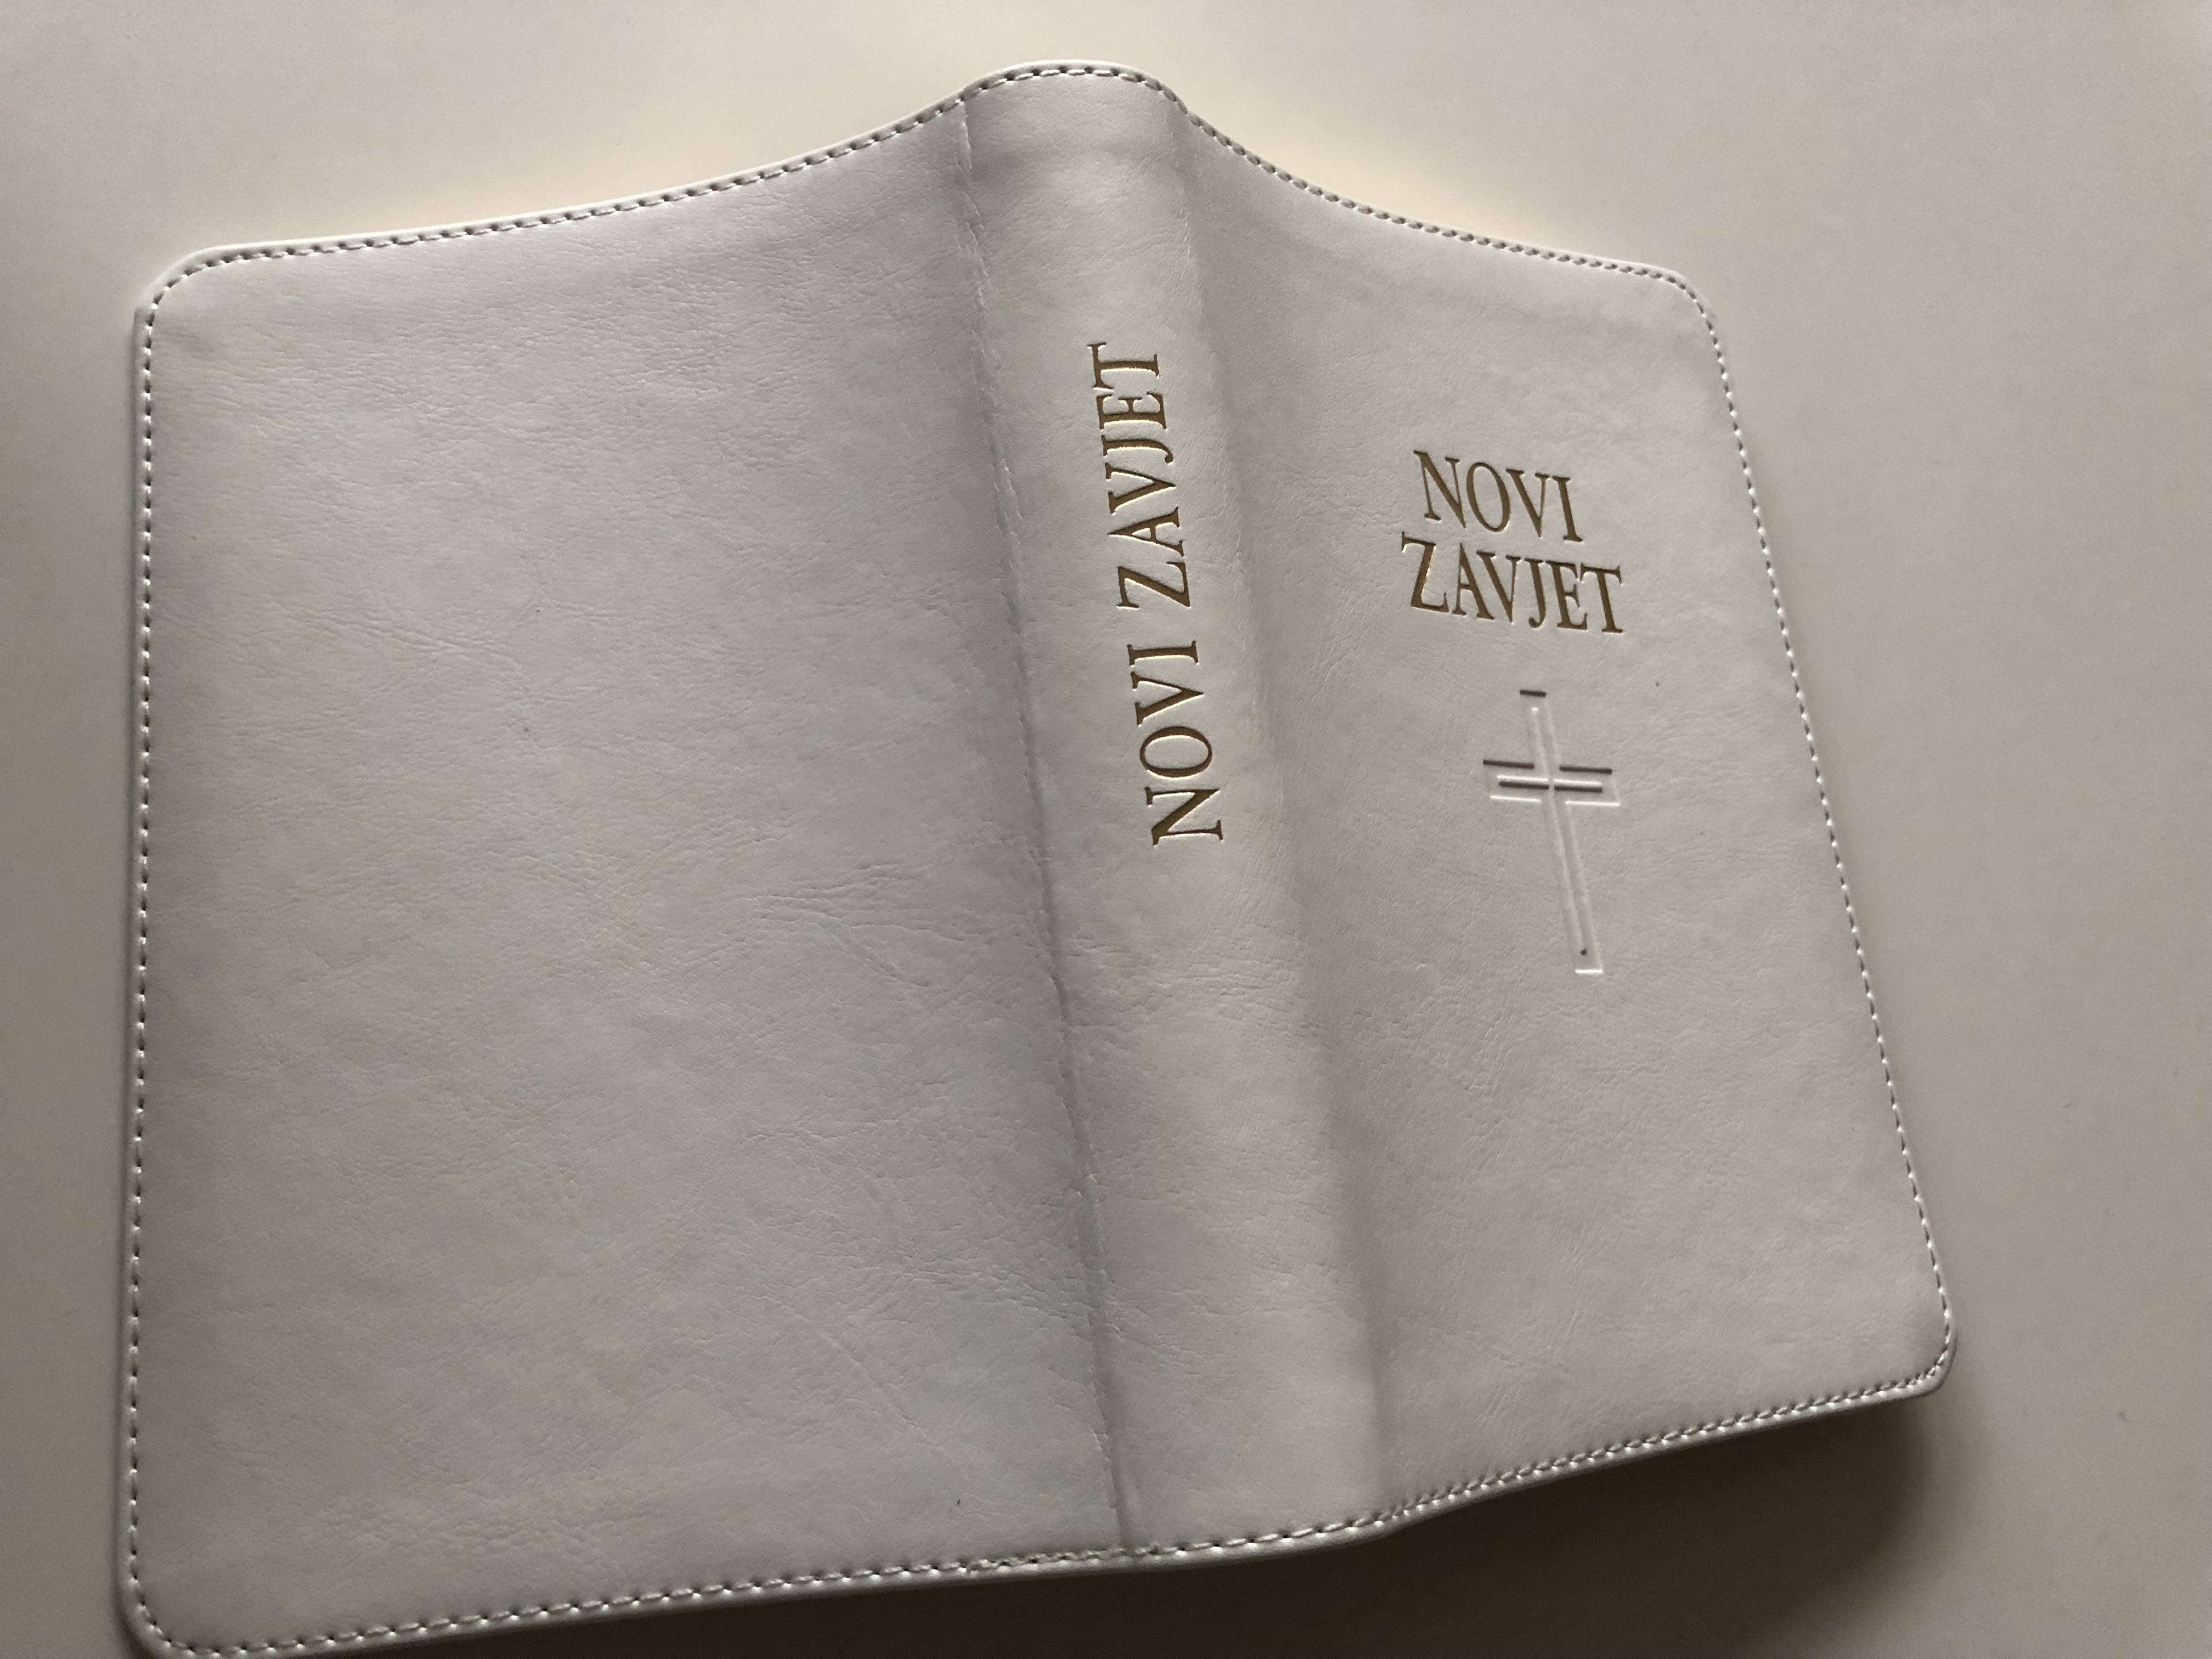 novi-zavjet-the-new-testament-in-croatian-language-leather-bound-white-golden-edges-hbd-2017-10-.jpg